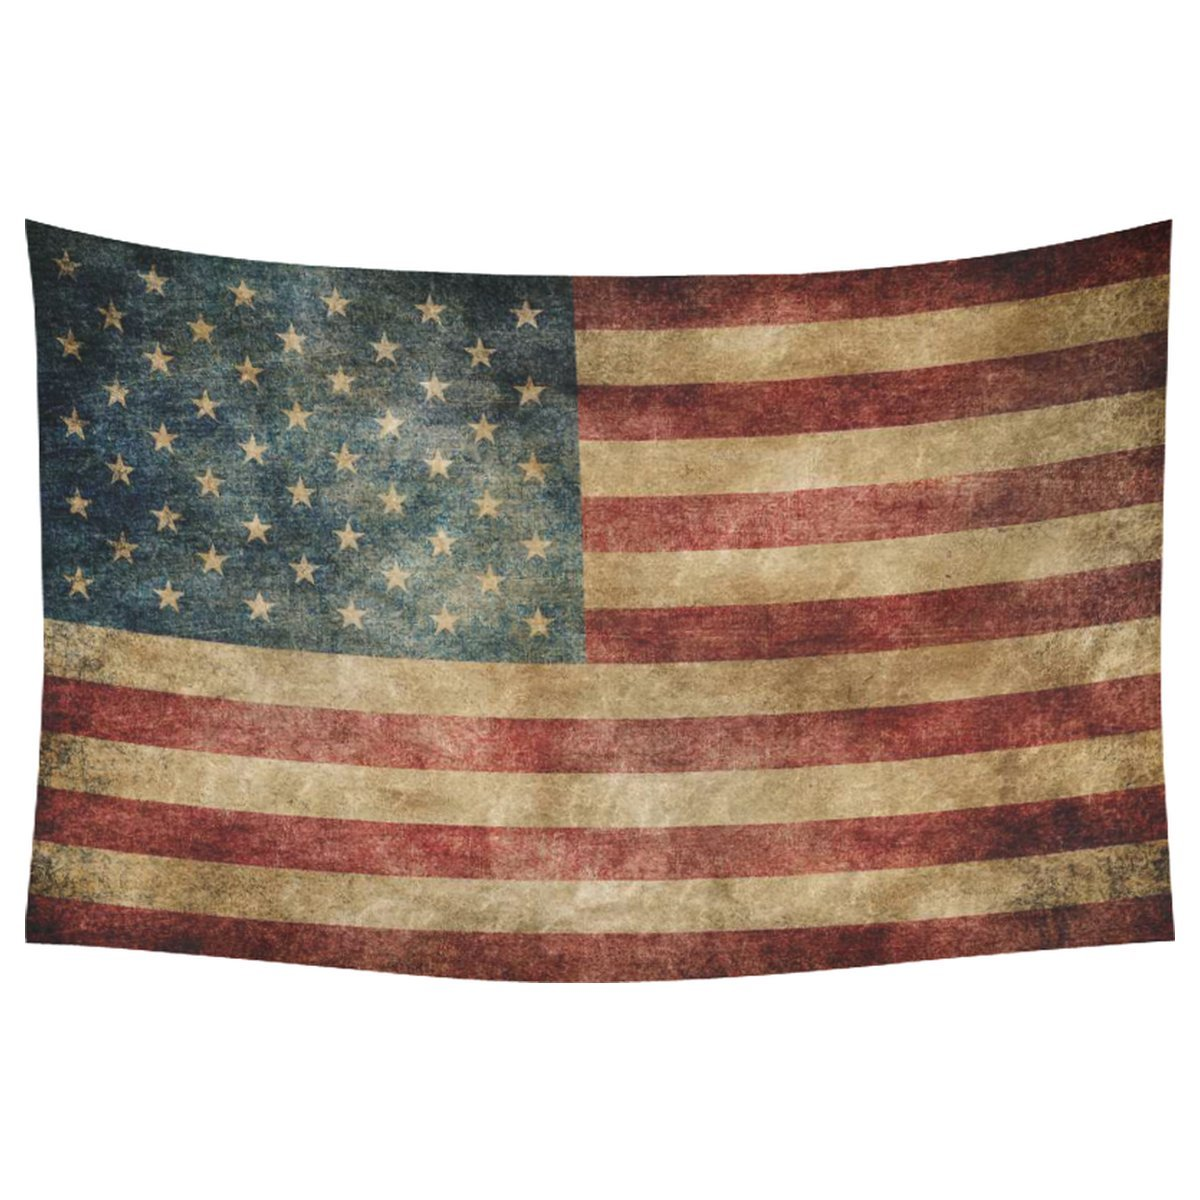 InterestPrint Stars and Stripes USA Flag Wall Art Home Decor, Vintage Retro American Flag Background Bule Red Tapestry Wall Hanging Art Sets 90 X 60 Inches